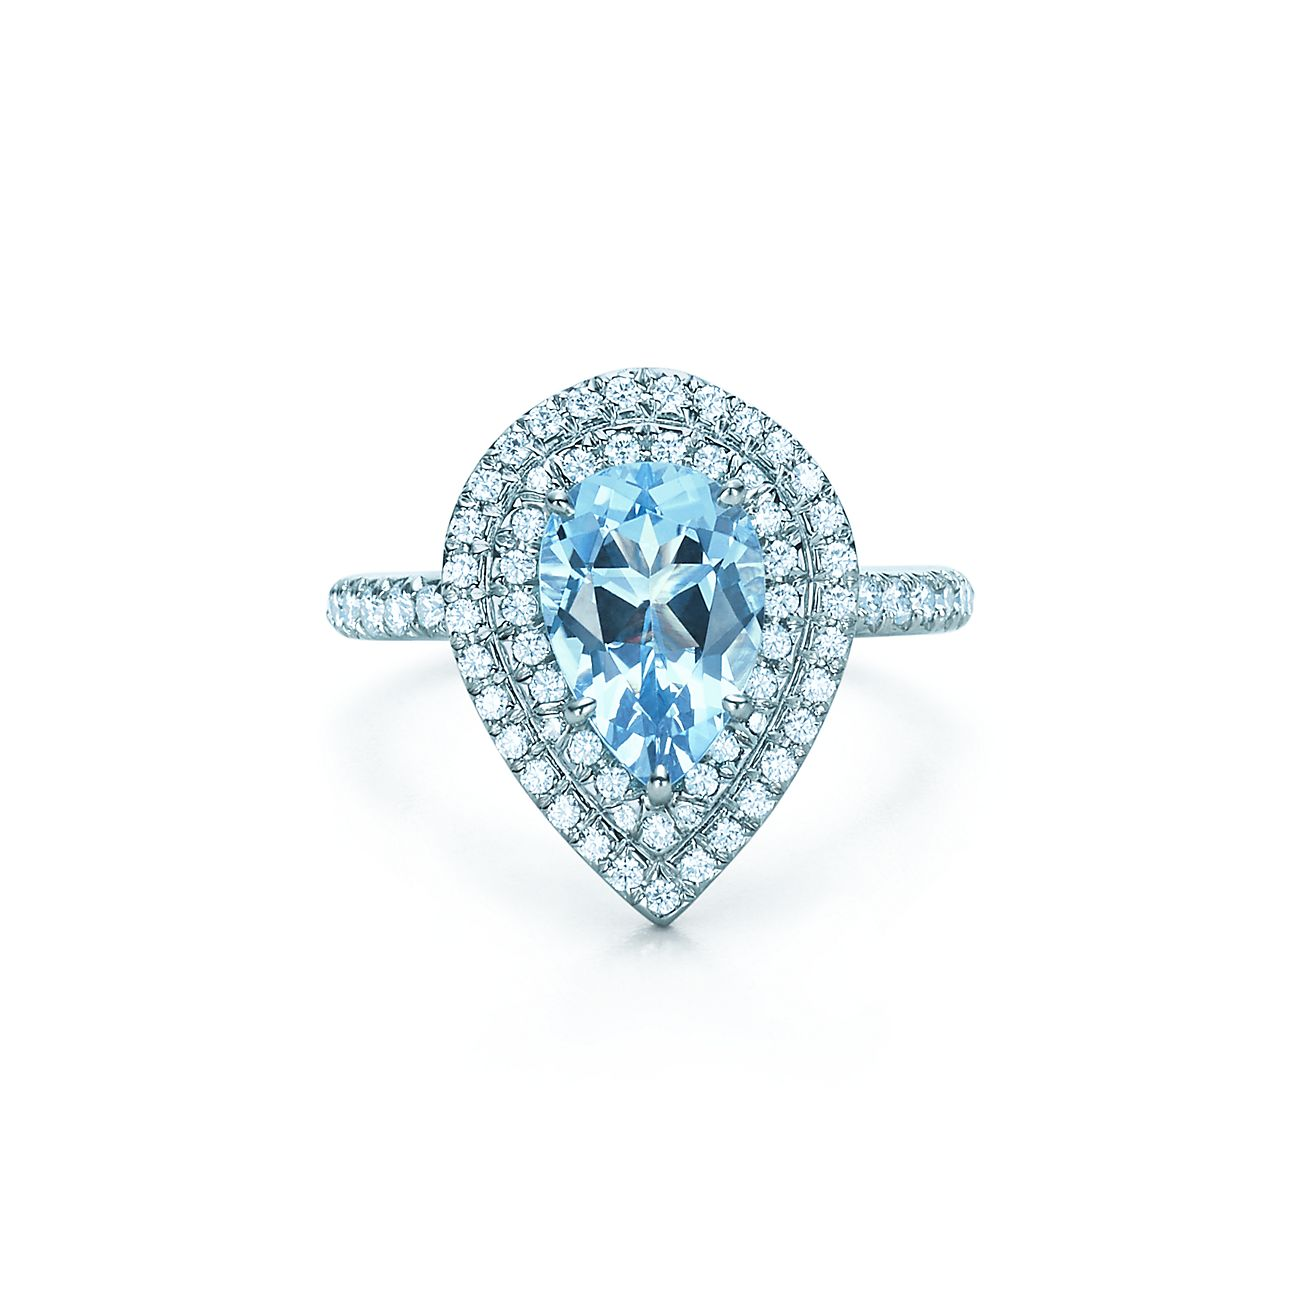 en jewellery tiffany tiffanys engagement rings tanzanite